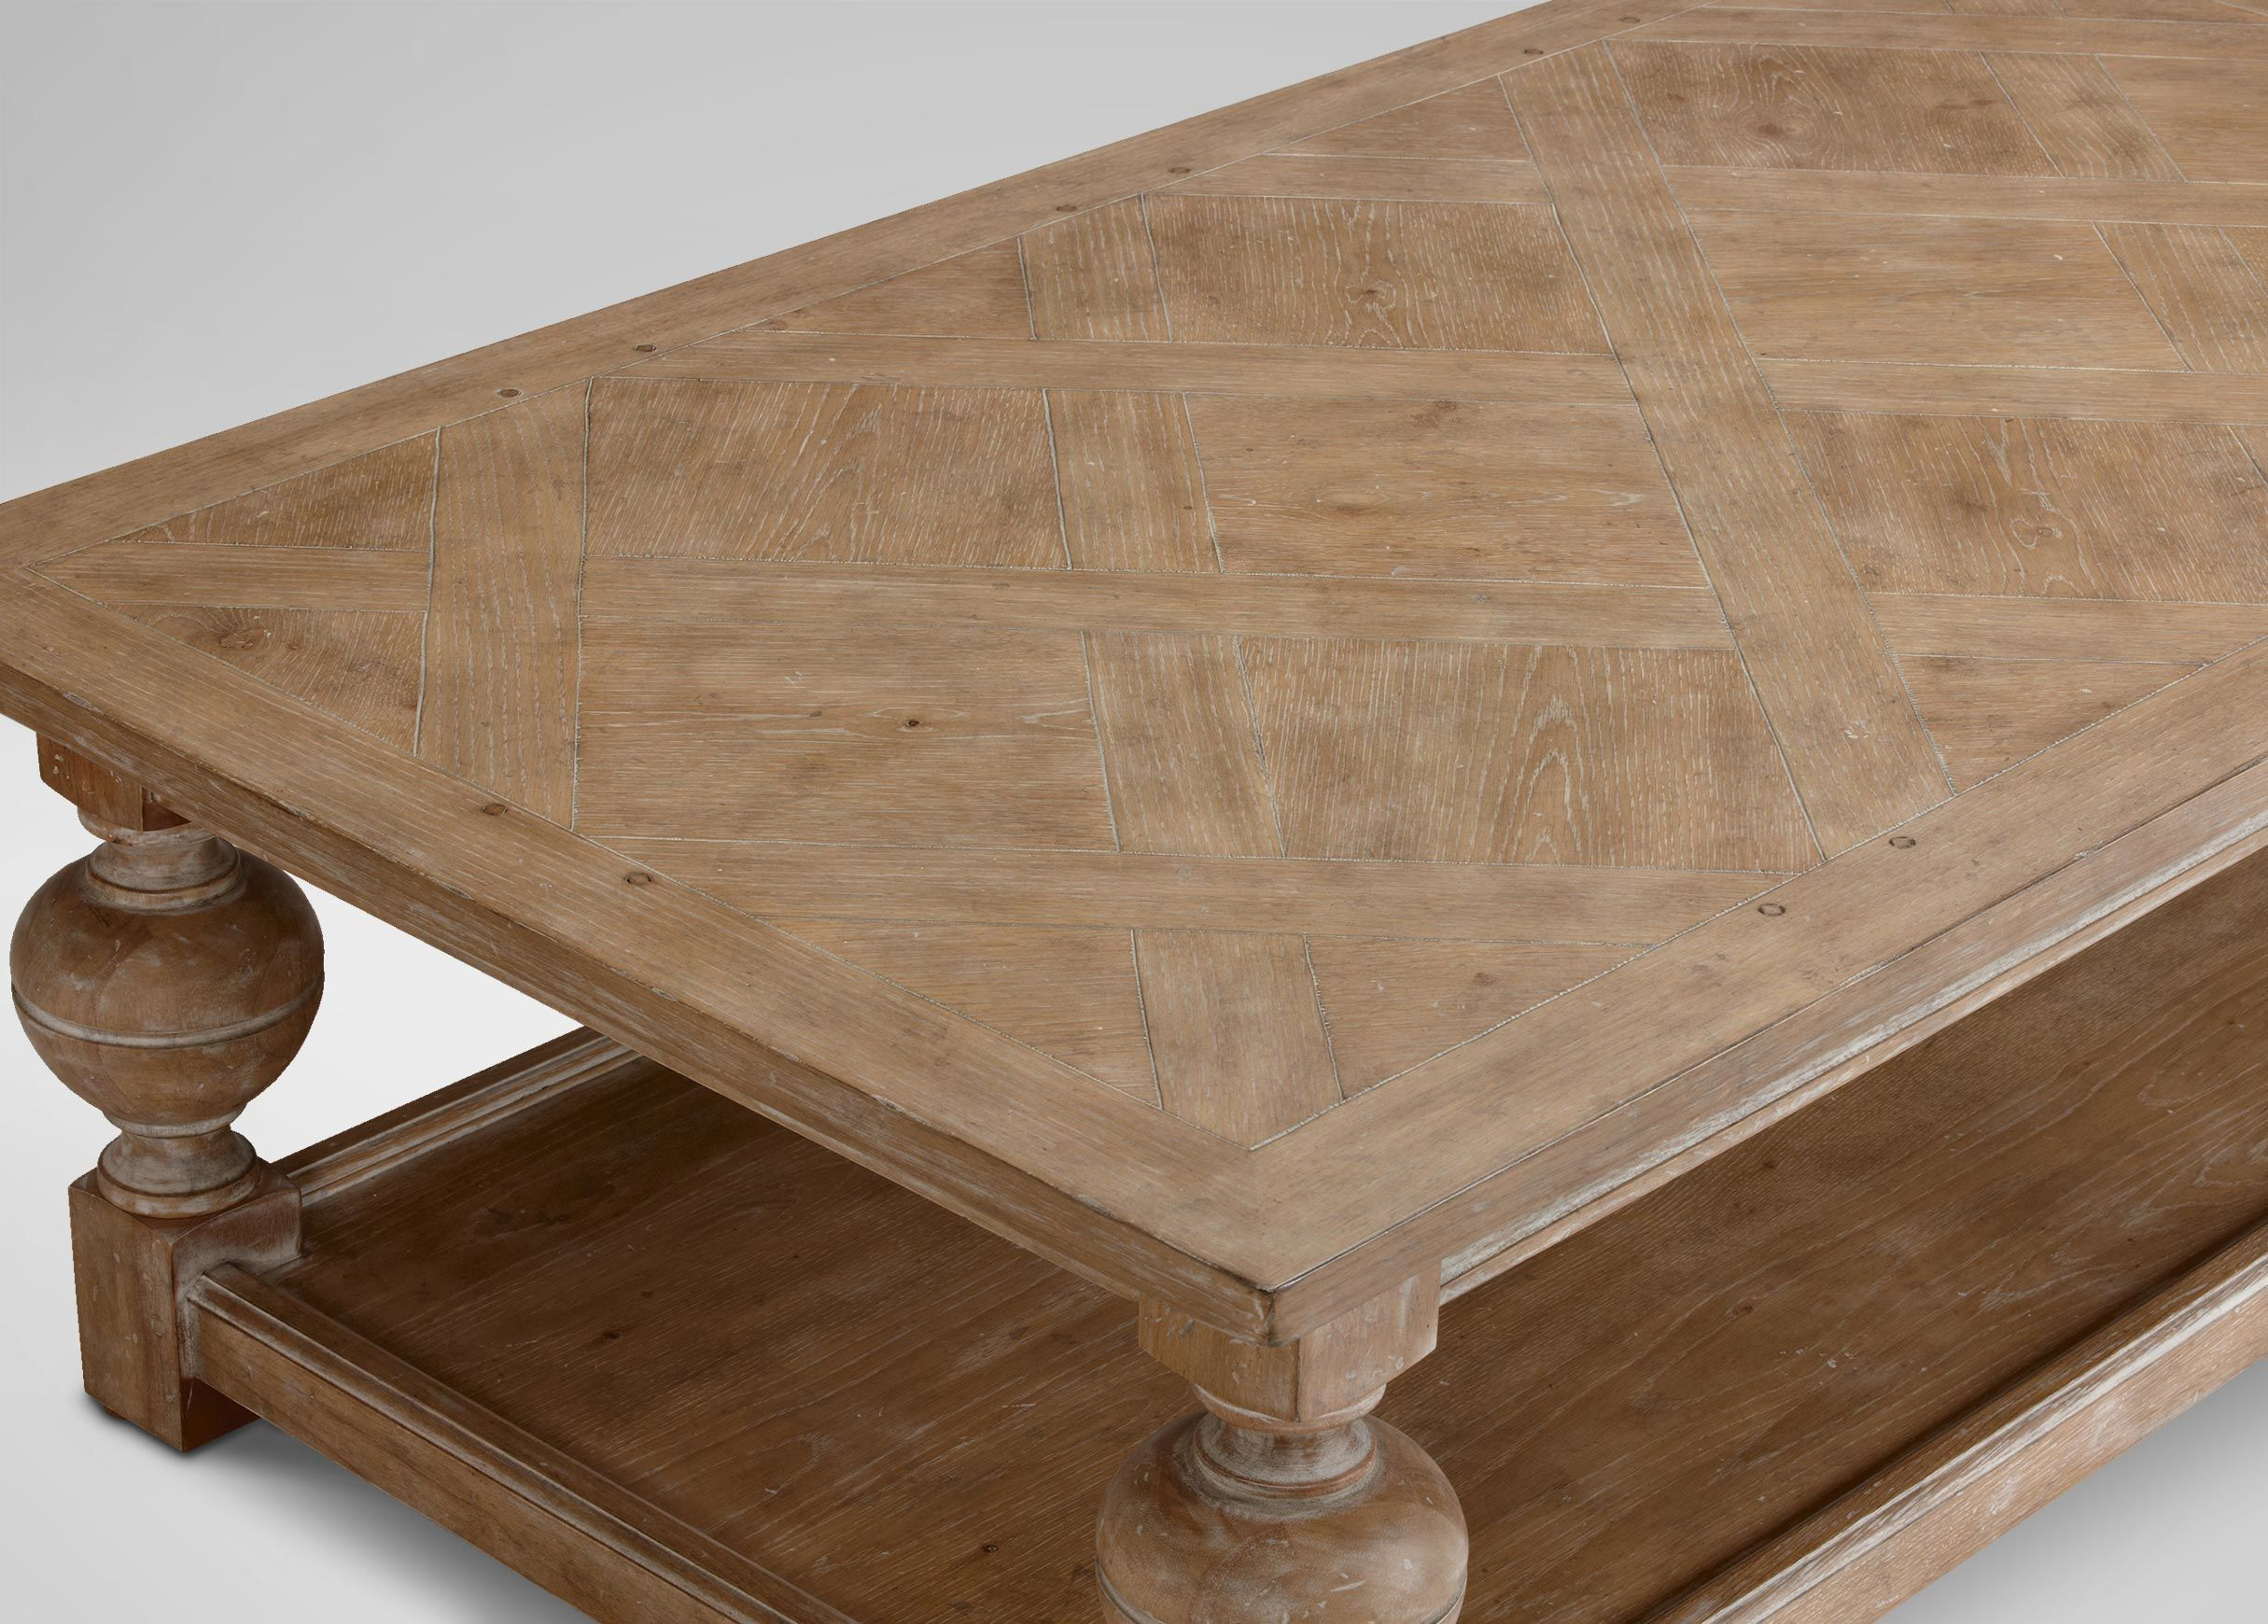 Deacon Rectangular Coffee Table Coffee Tables Coffee Table Rectangular Coffee Table Large Square Coffee Table [ 1740 x 2430 Pixel ]